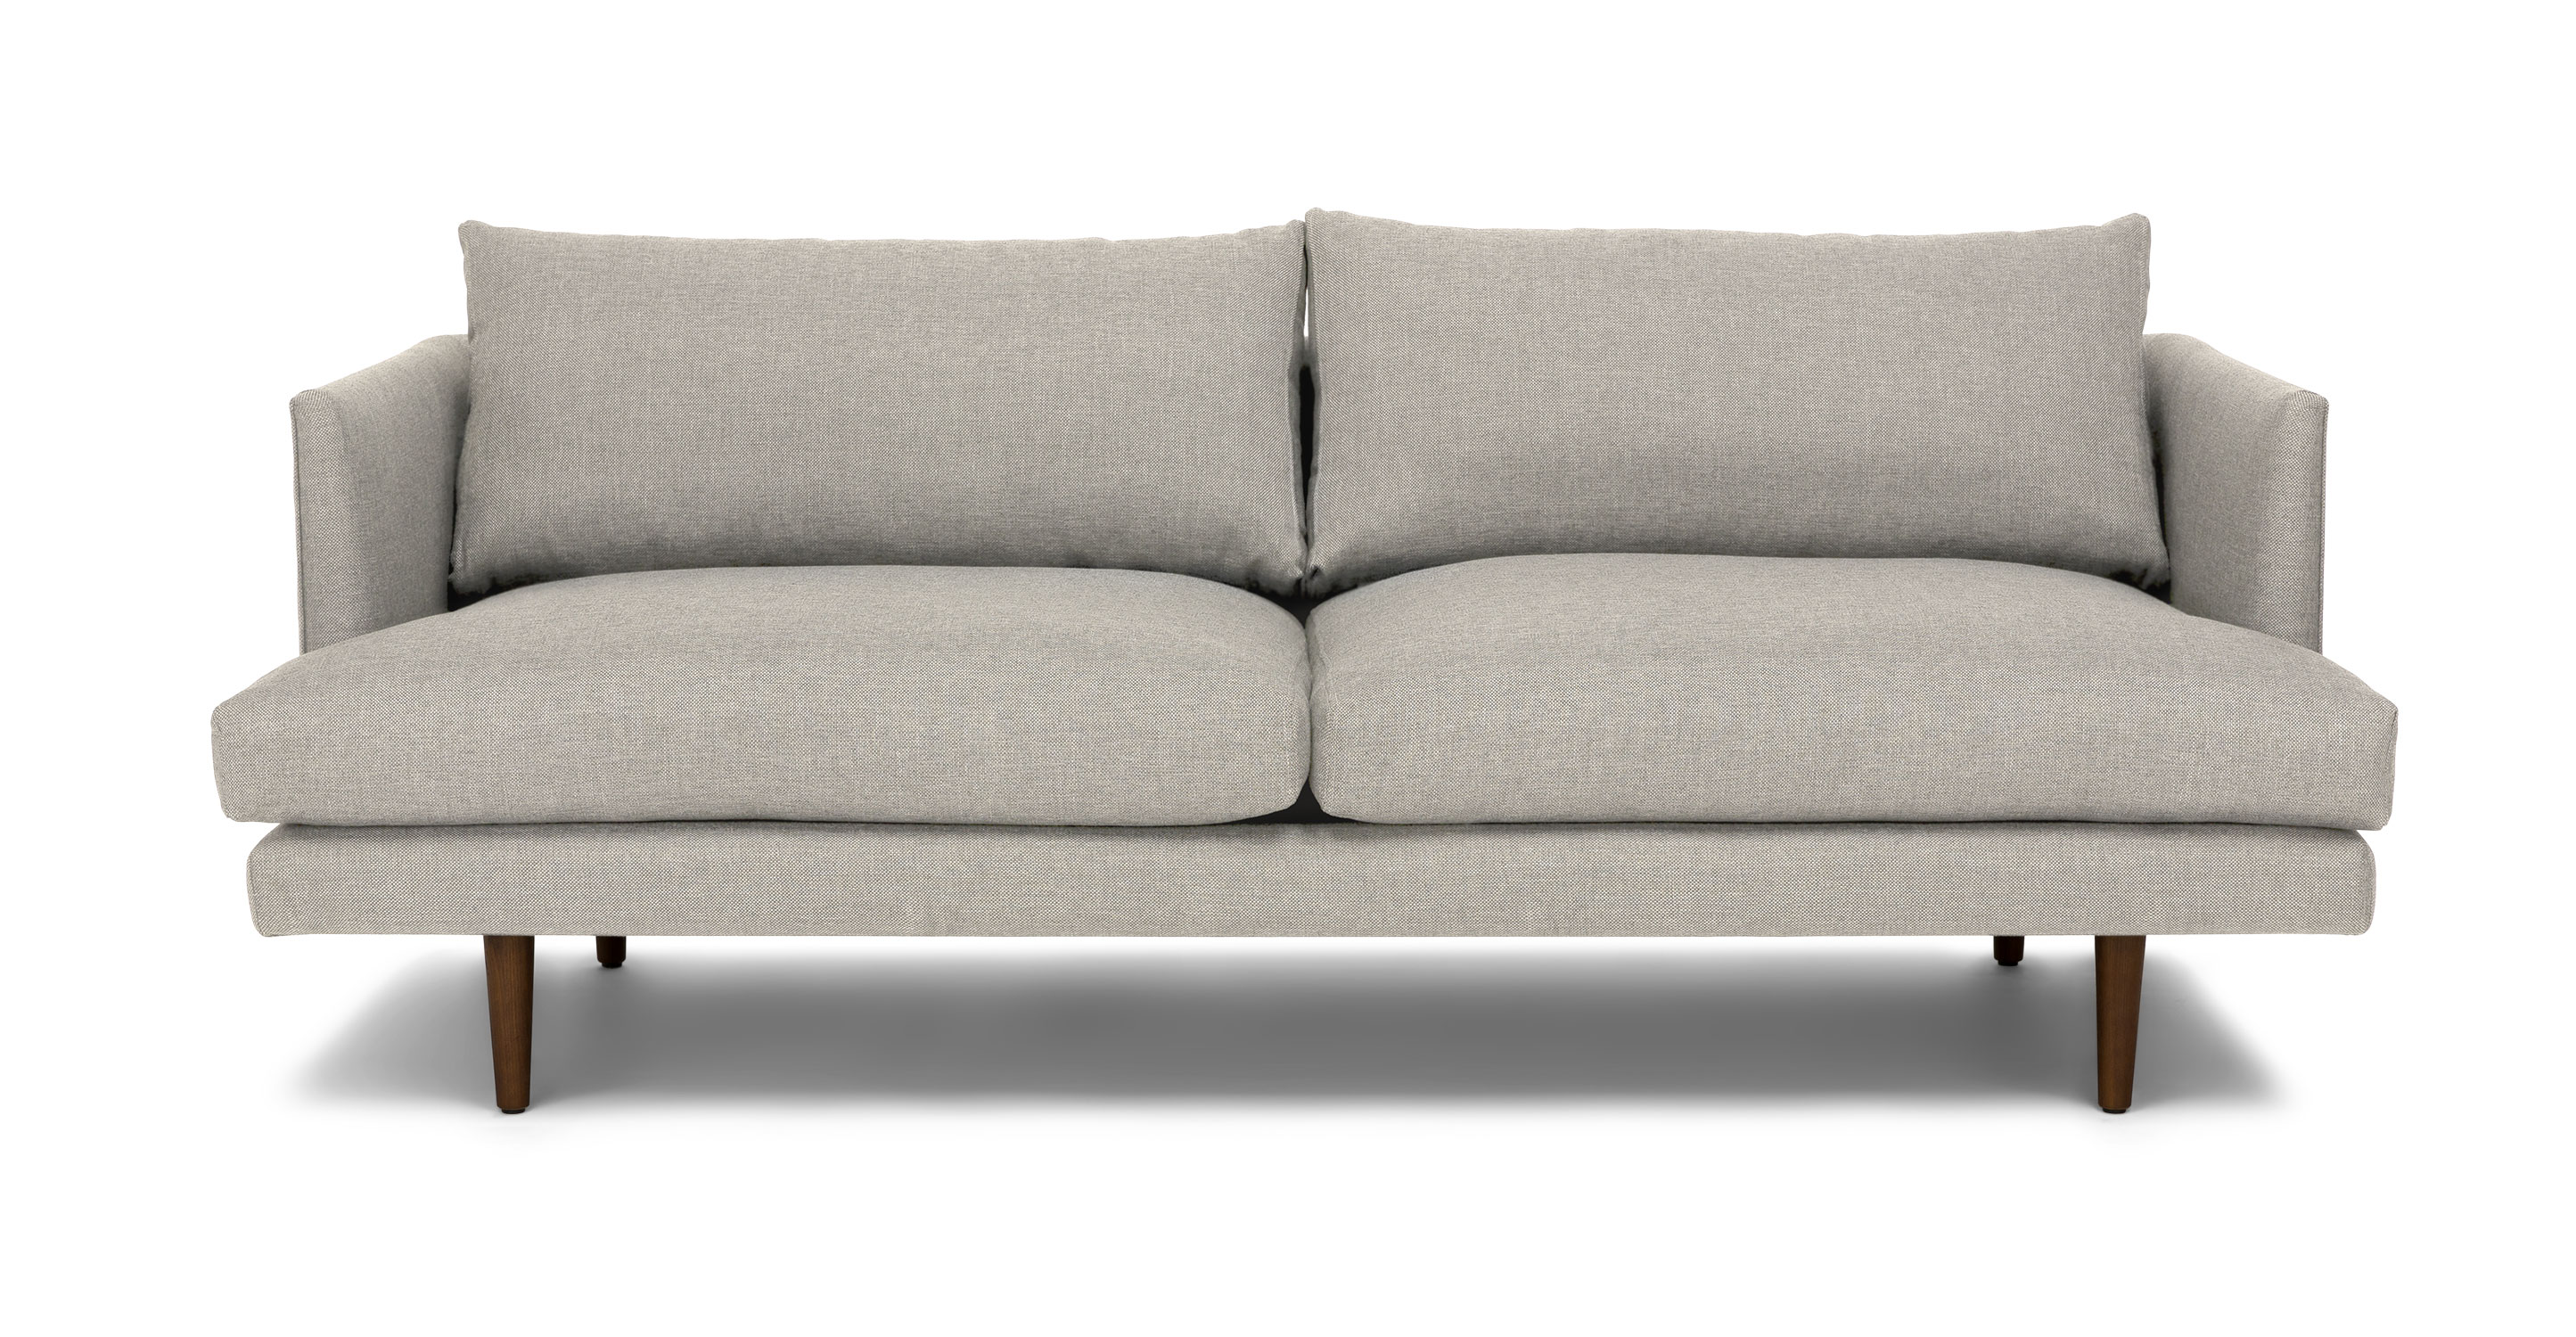 Burrard Seasalt Gray 78 Quot Sofa Sofas Article Modern